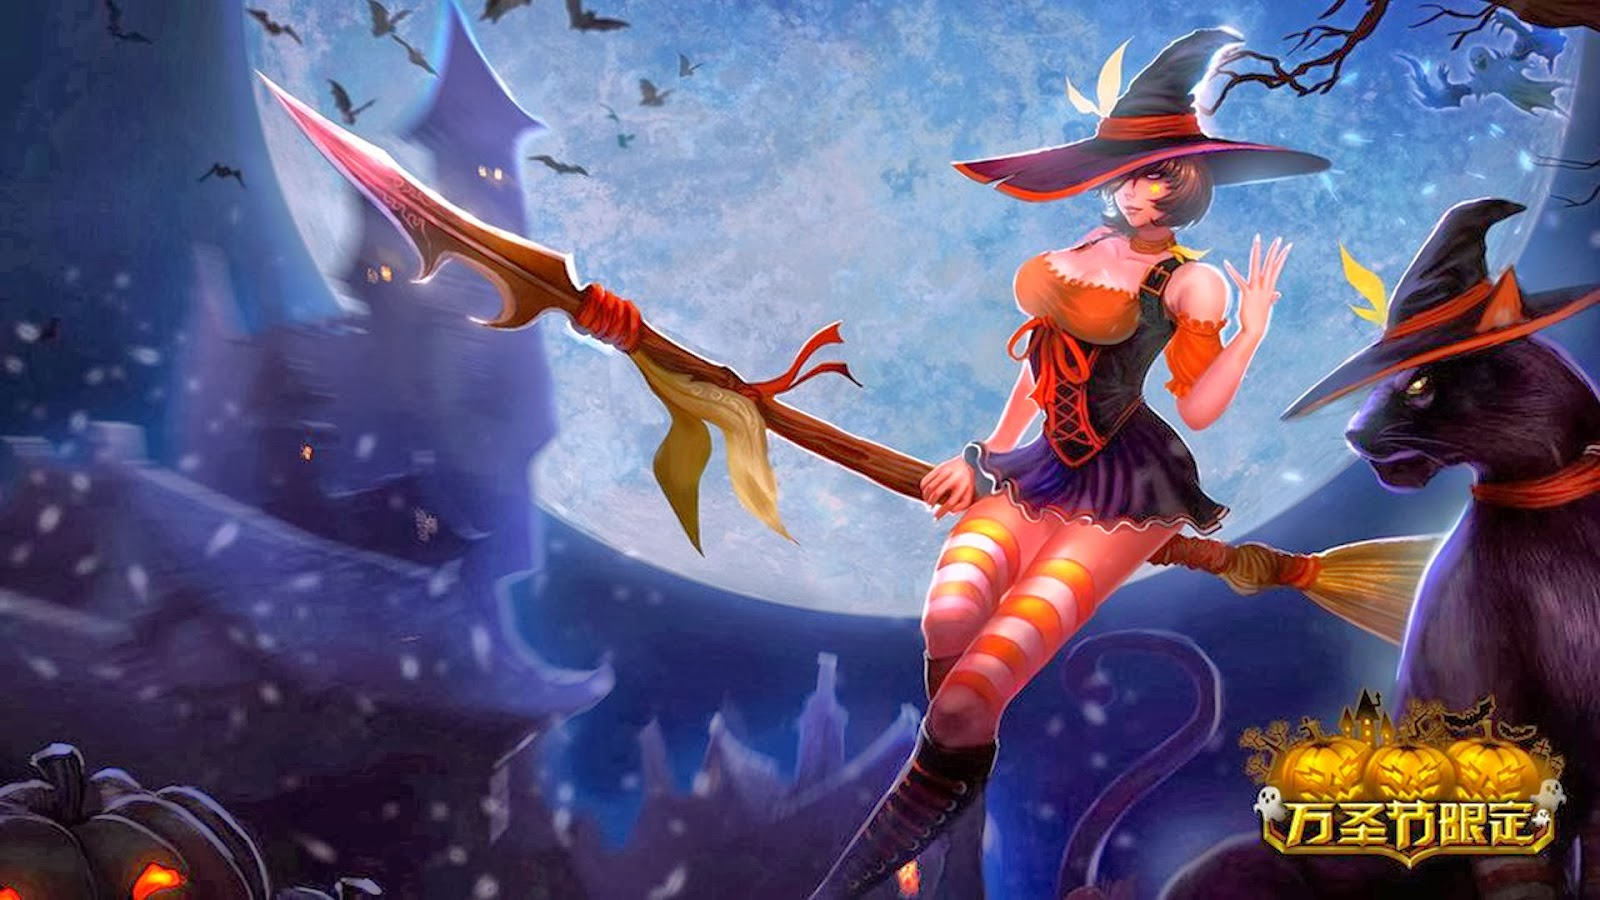 Nidalee Desktop Backgrounds Nidalee LOL Champion Wallpapers 1600x900